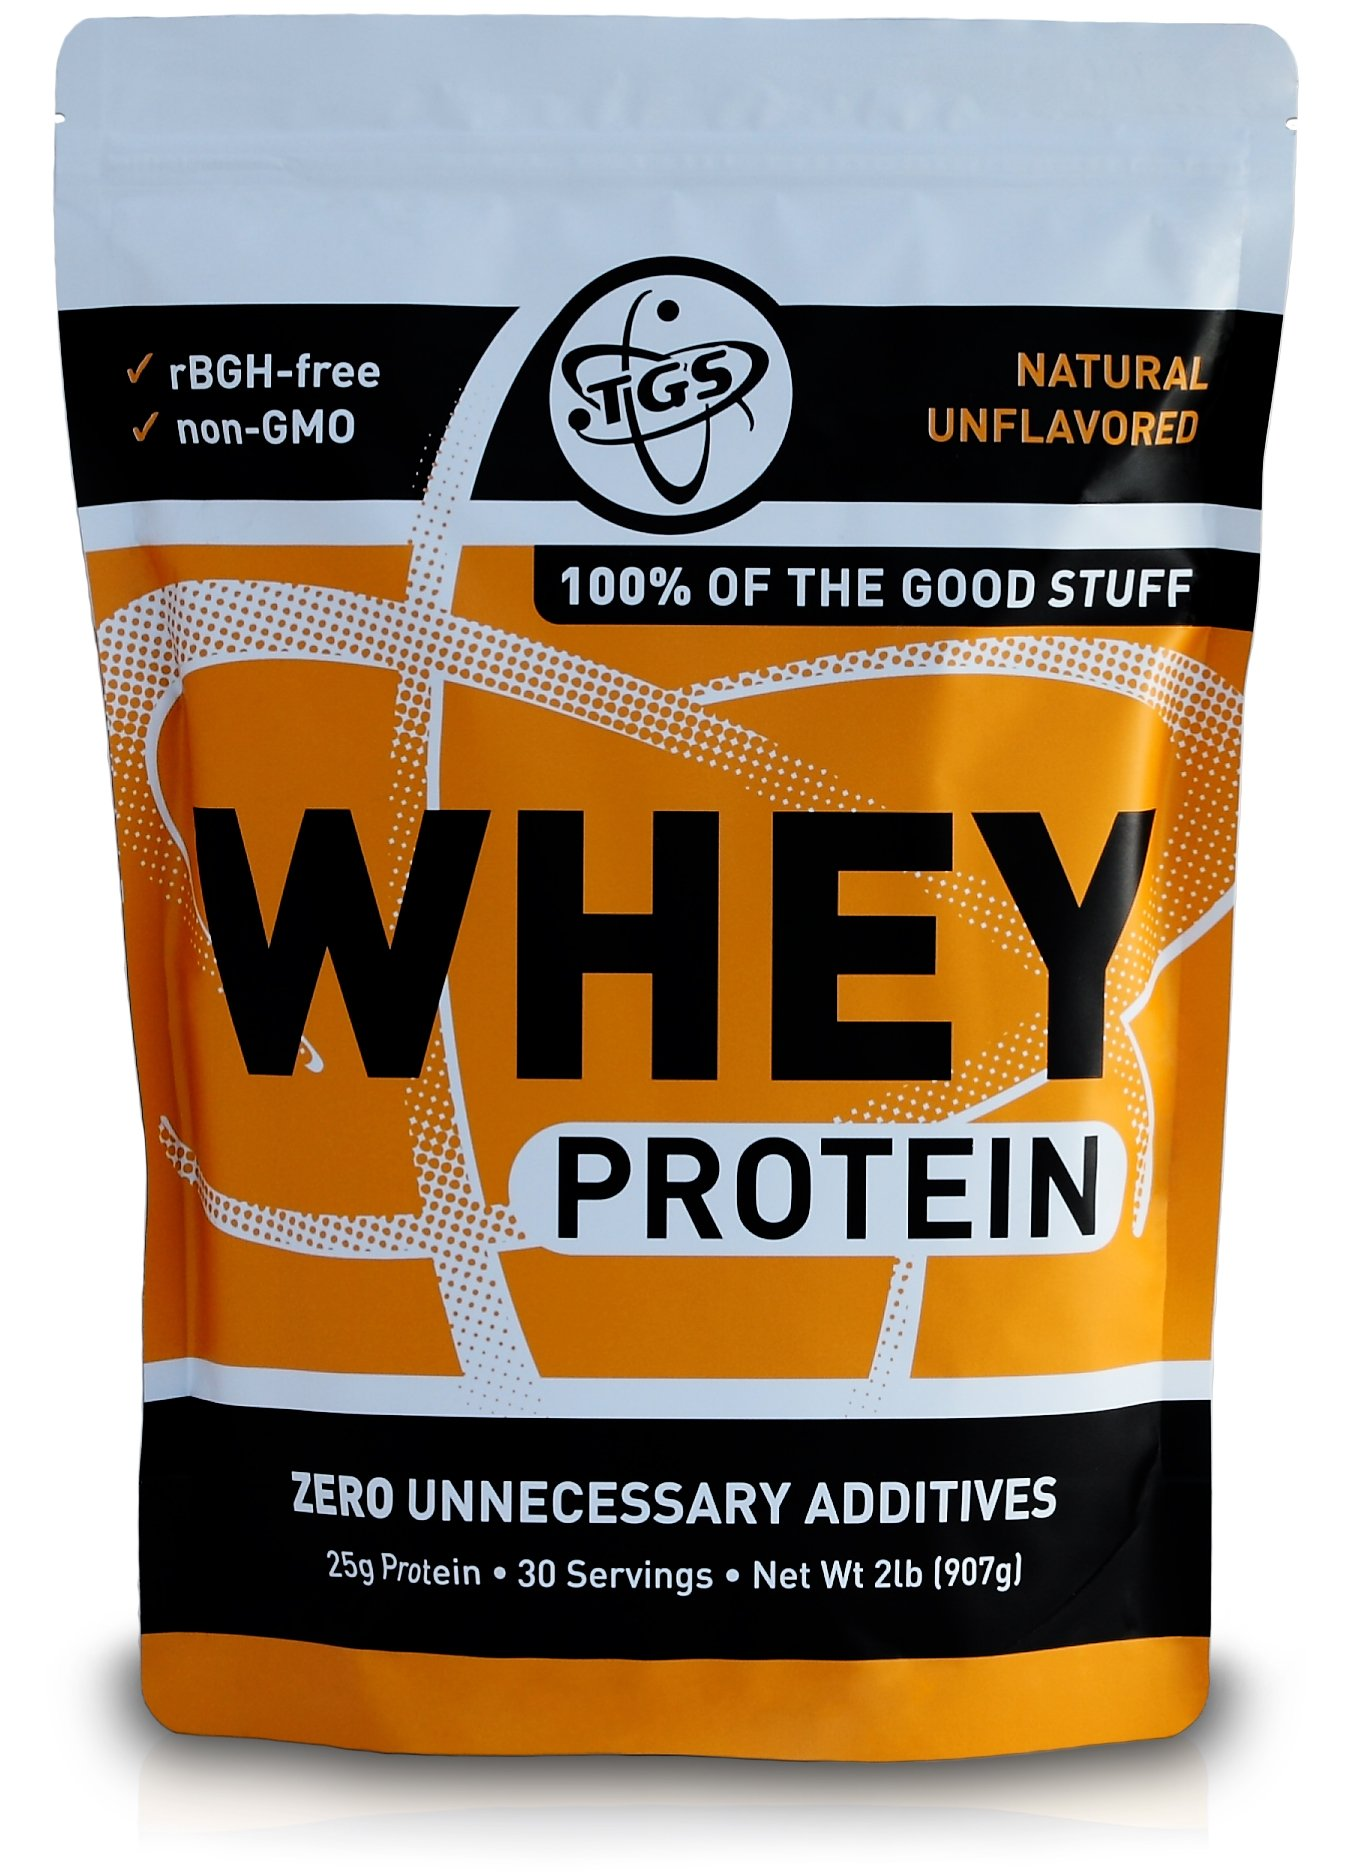 TGS All Natural 100% Whey Protein Powder - Unflavored, Undenatured, Unsweetened - Low Carb, Soy Free, Gluten Free, GMO Free (2 lb)